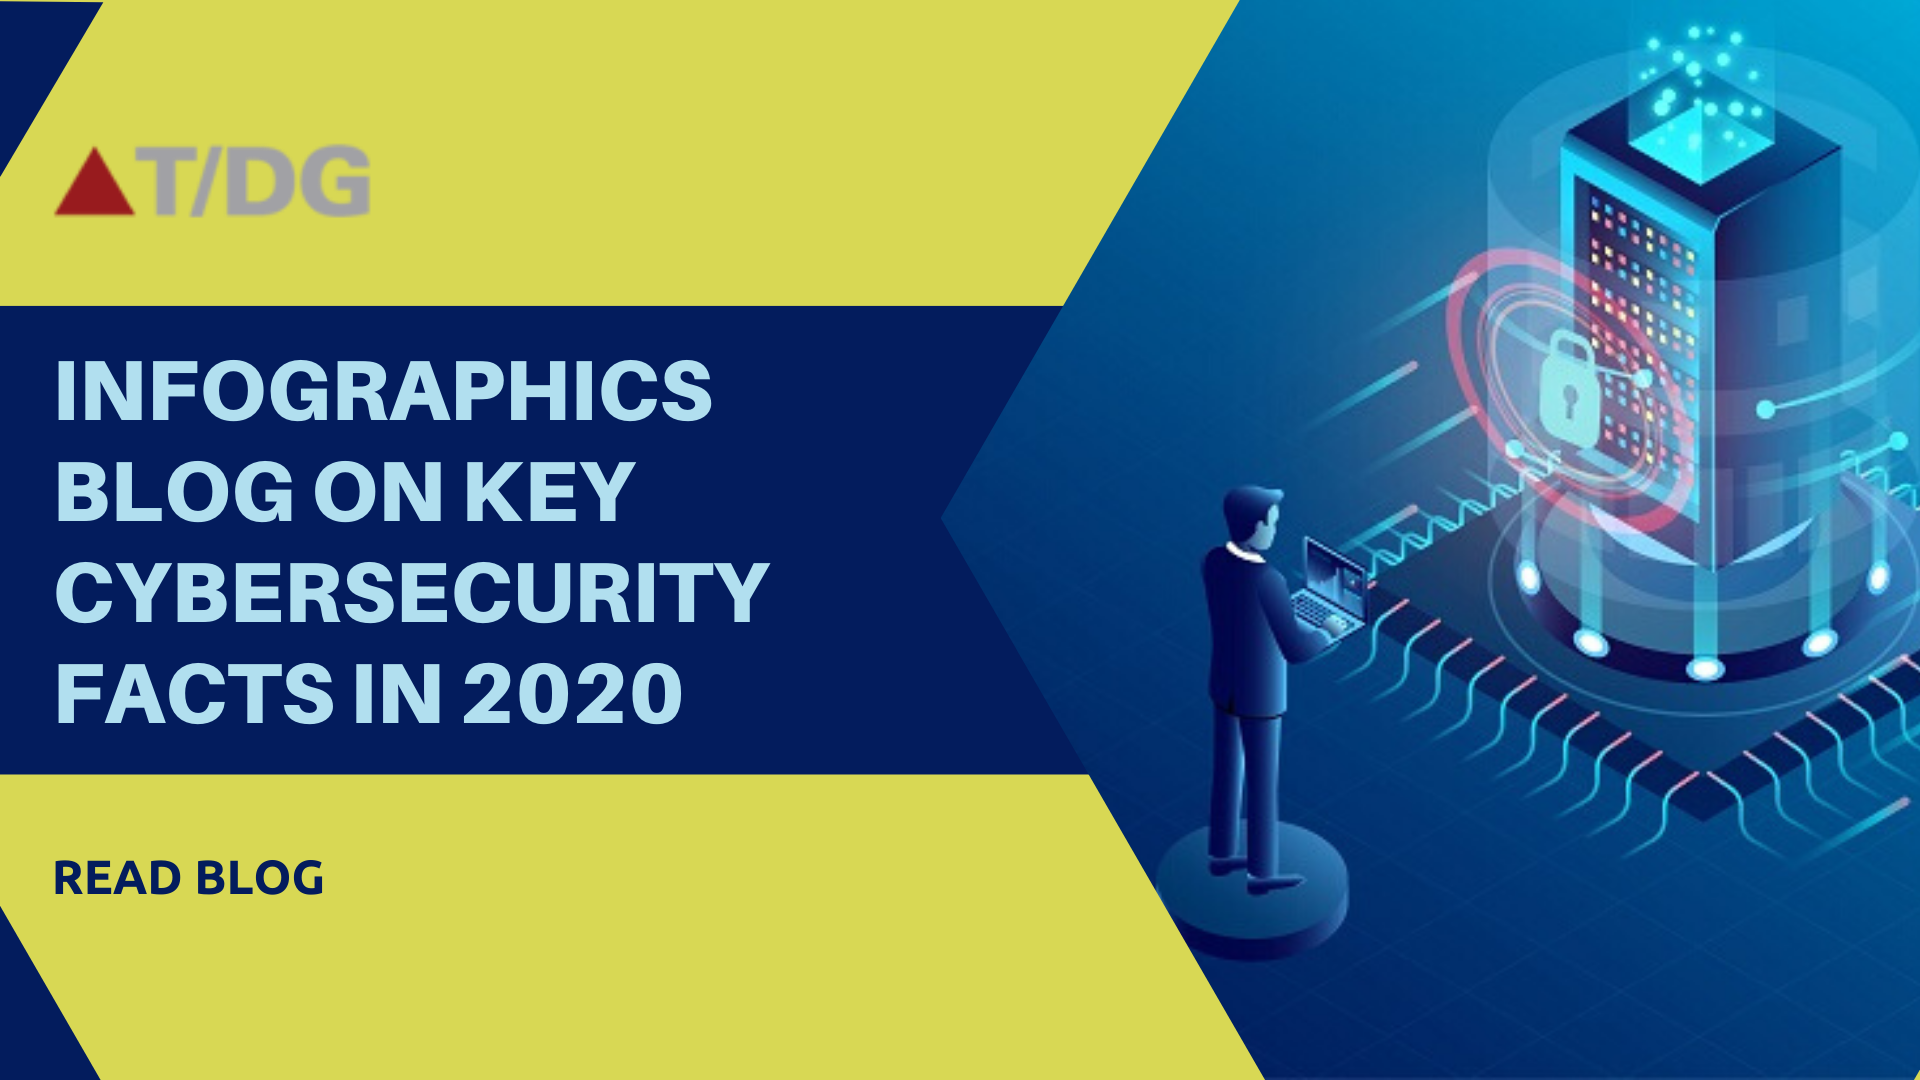 Infographics Blog on Facts to Know about Cybersecurity in 2020